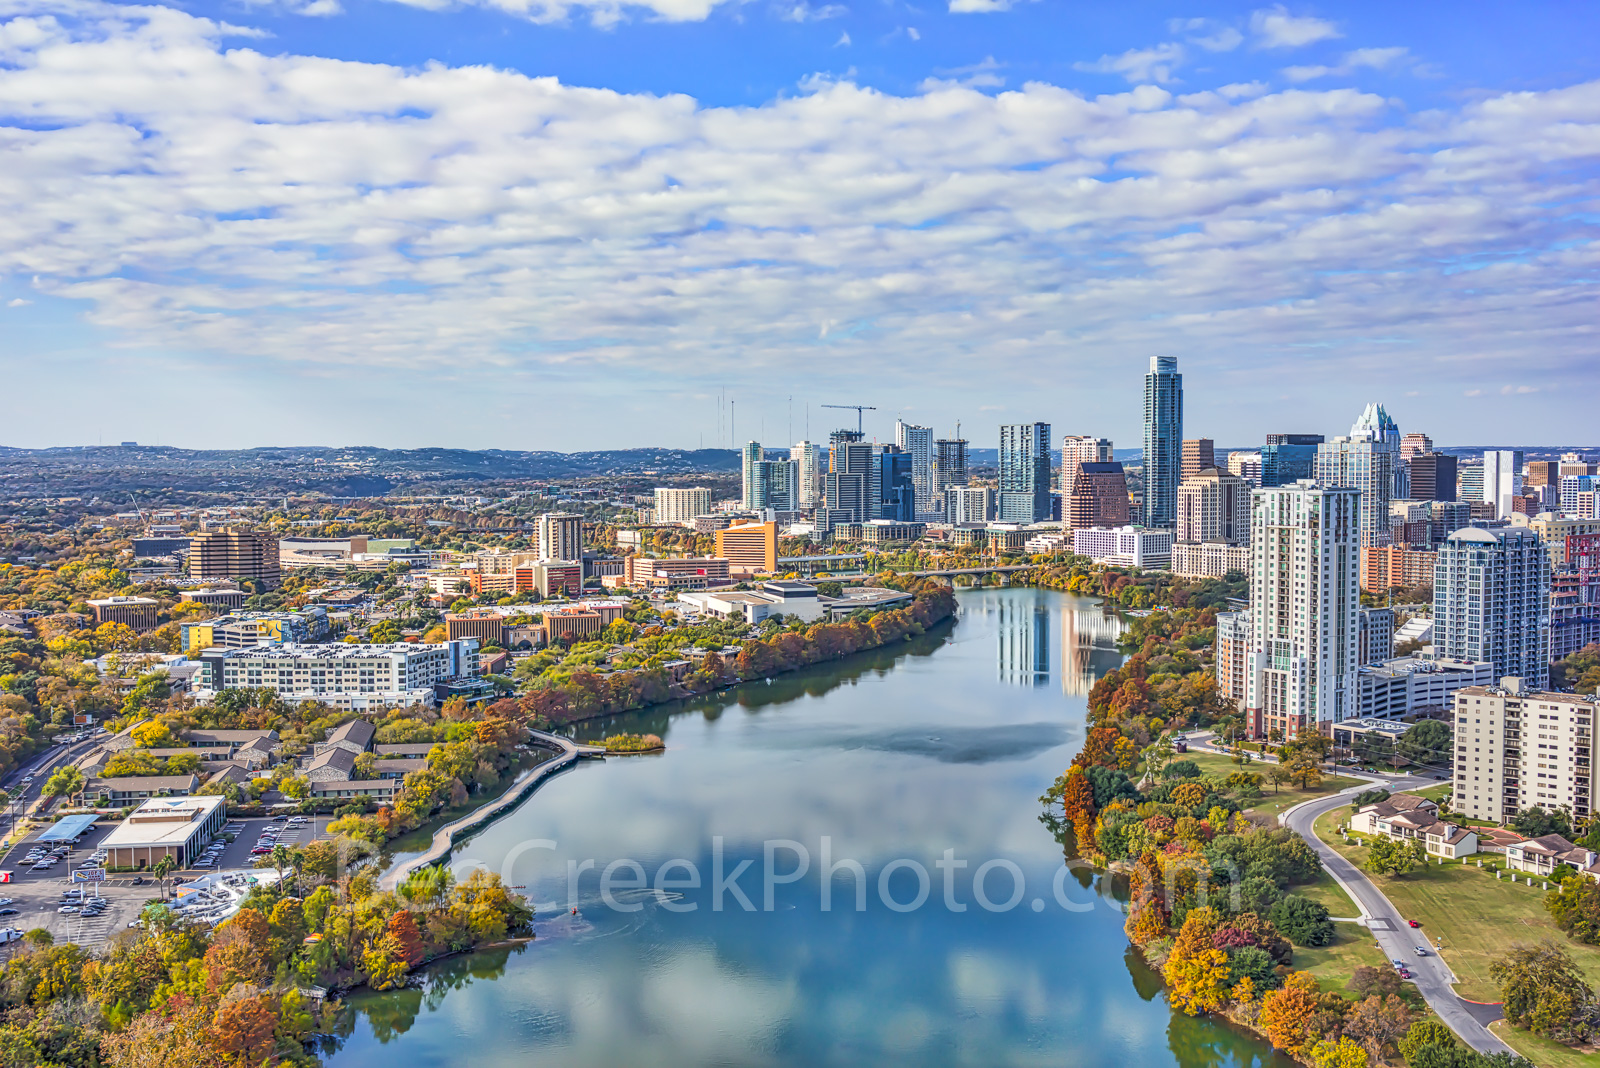 Austin skyline, Austin skyline fall view,  aerial, high rise, Lady Bird lake, city, downtown, buildings, shoreline, IH35, water, reflection, clouds, colorful fall trees, banks, panorama, Austonian,, s